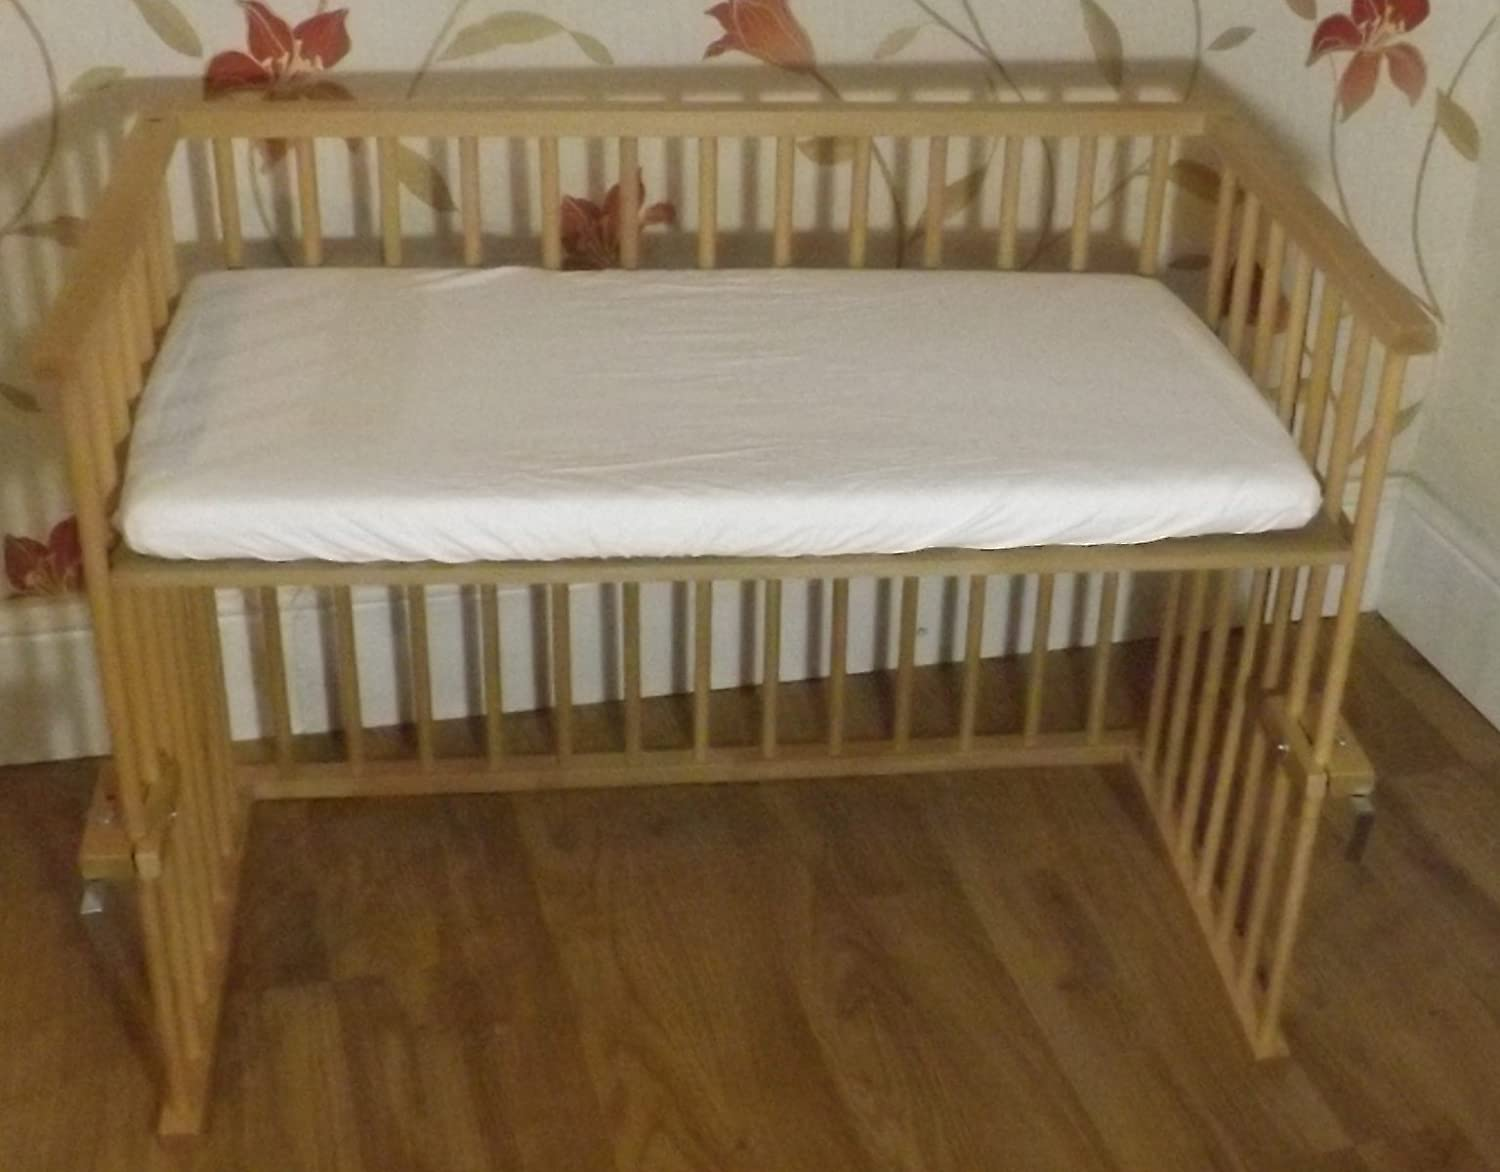 New Baby Beech Next to Mum Bedside crib, Next to Bed, Side by Side Crib, Cot With Deluxe Breathable Mattress Different Position / Space Saver Cot a b c